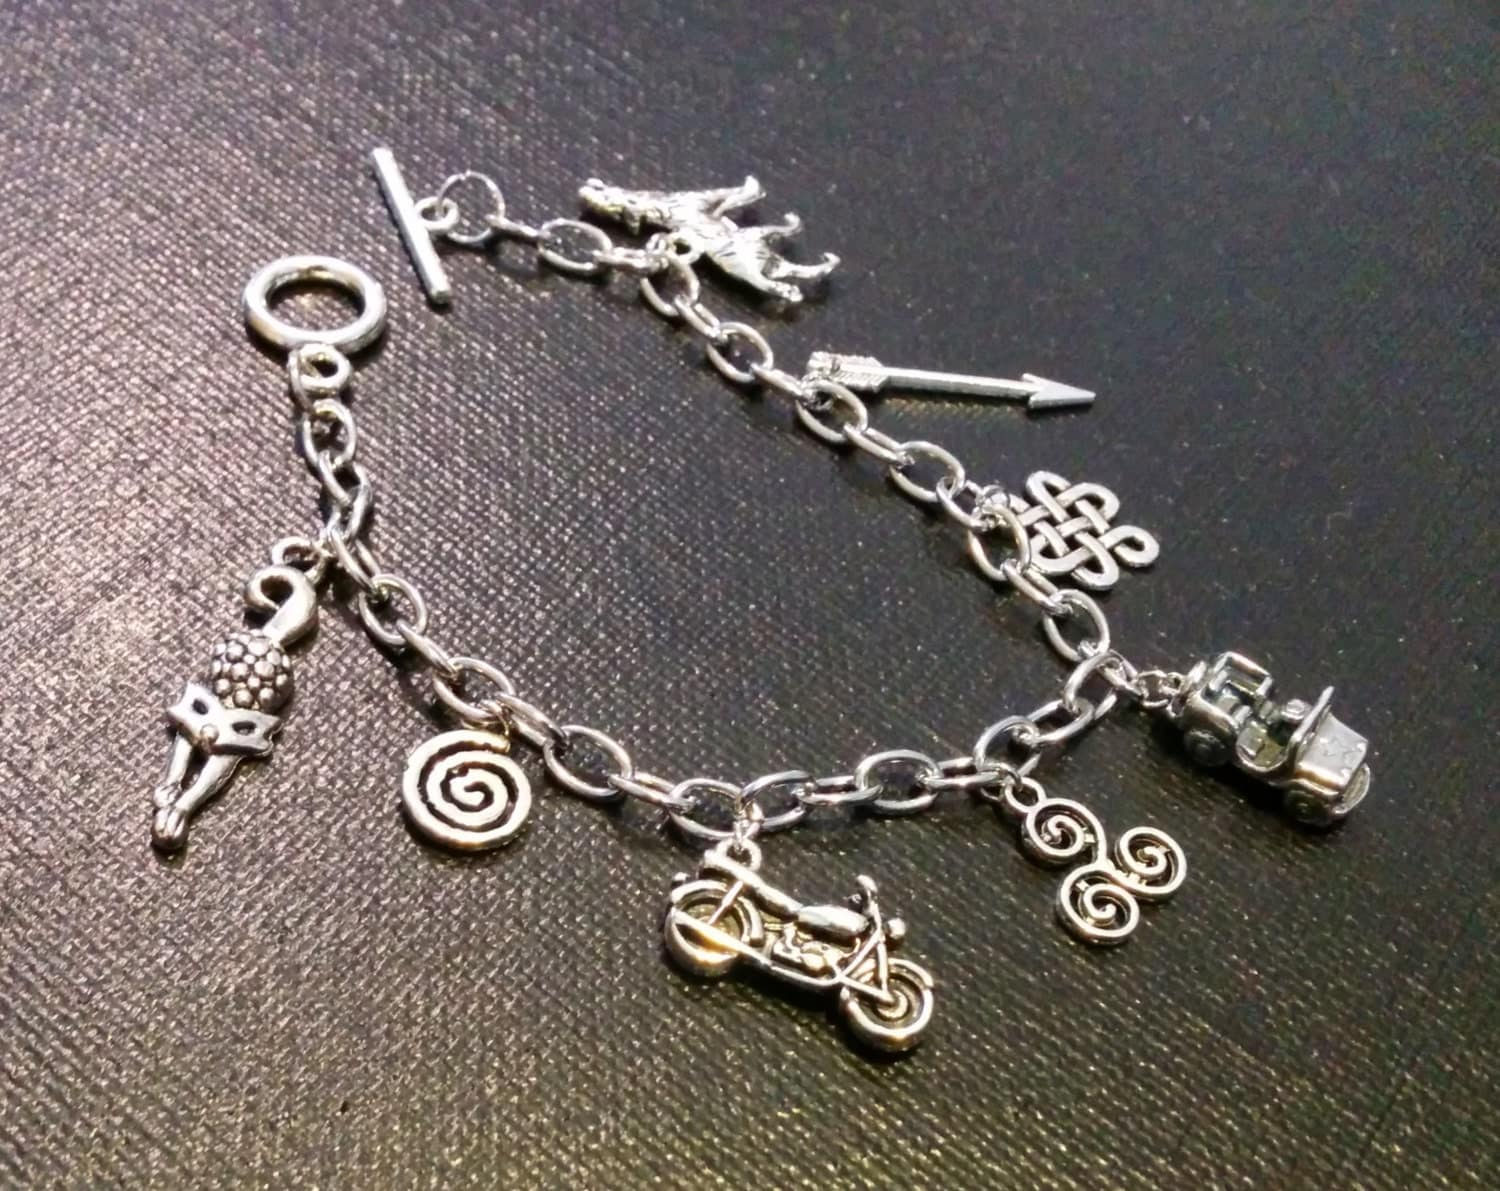 wolf inspired charm bracelet by number12creations on etsy